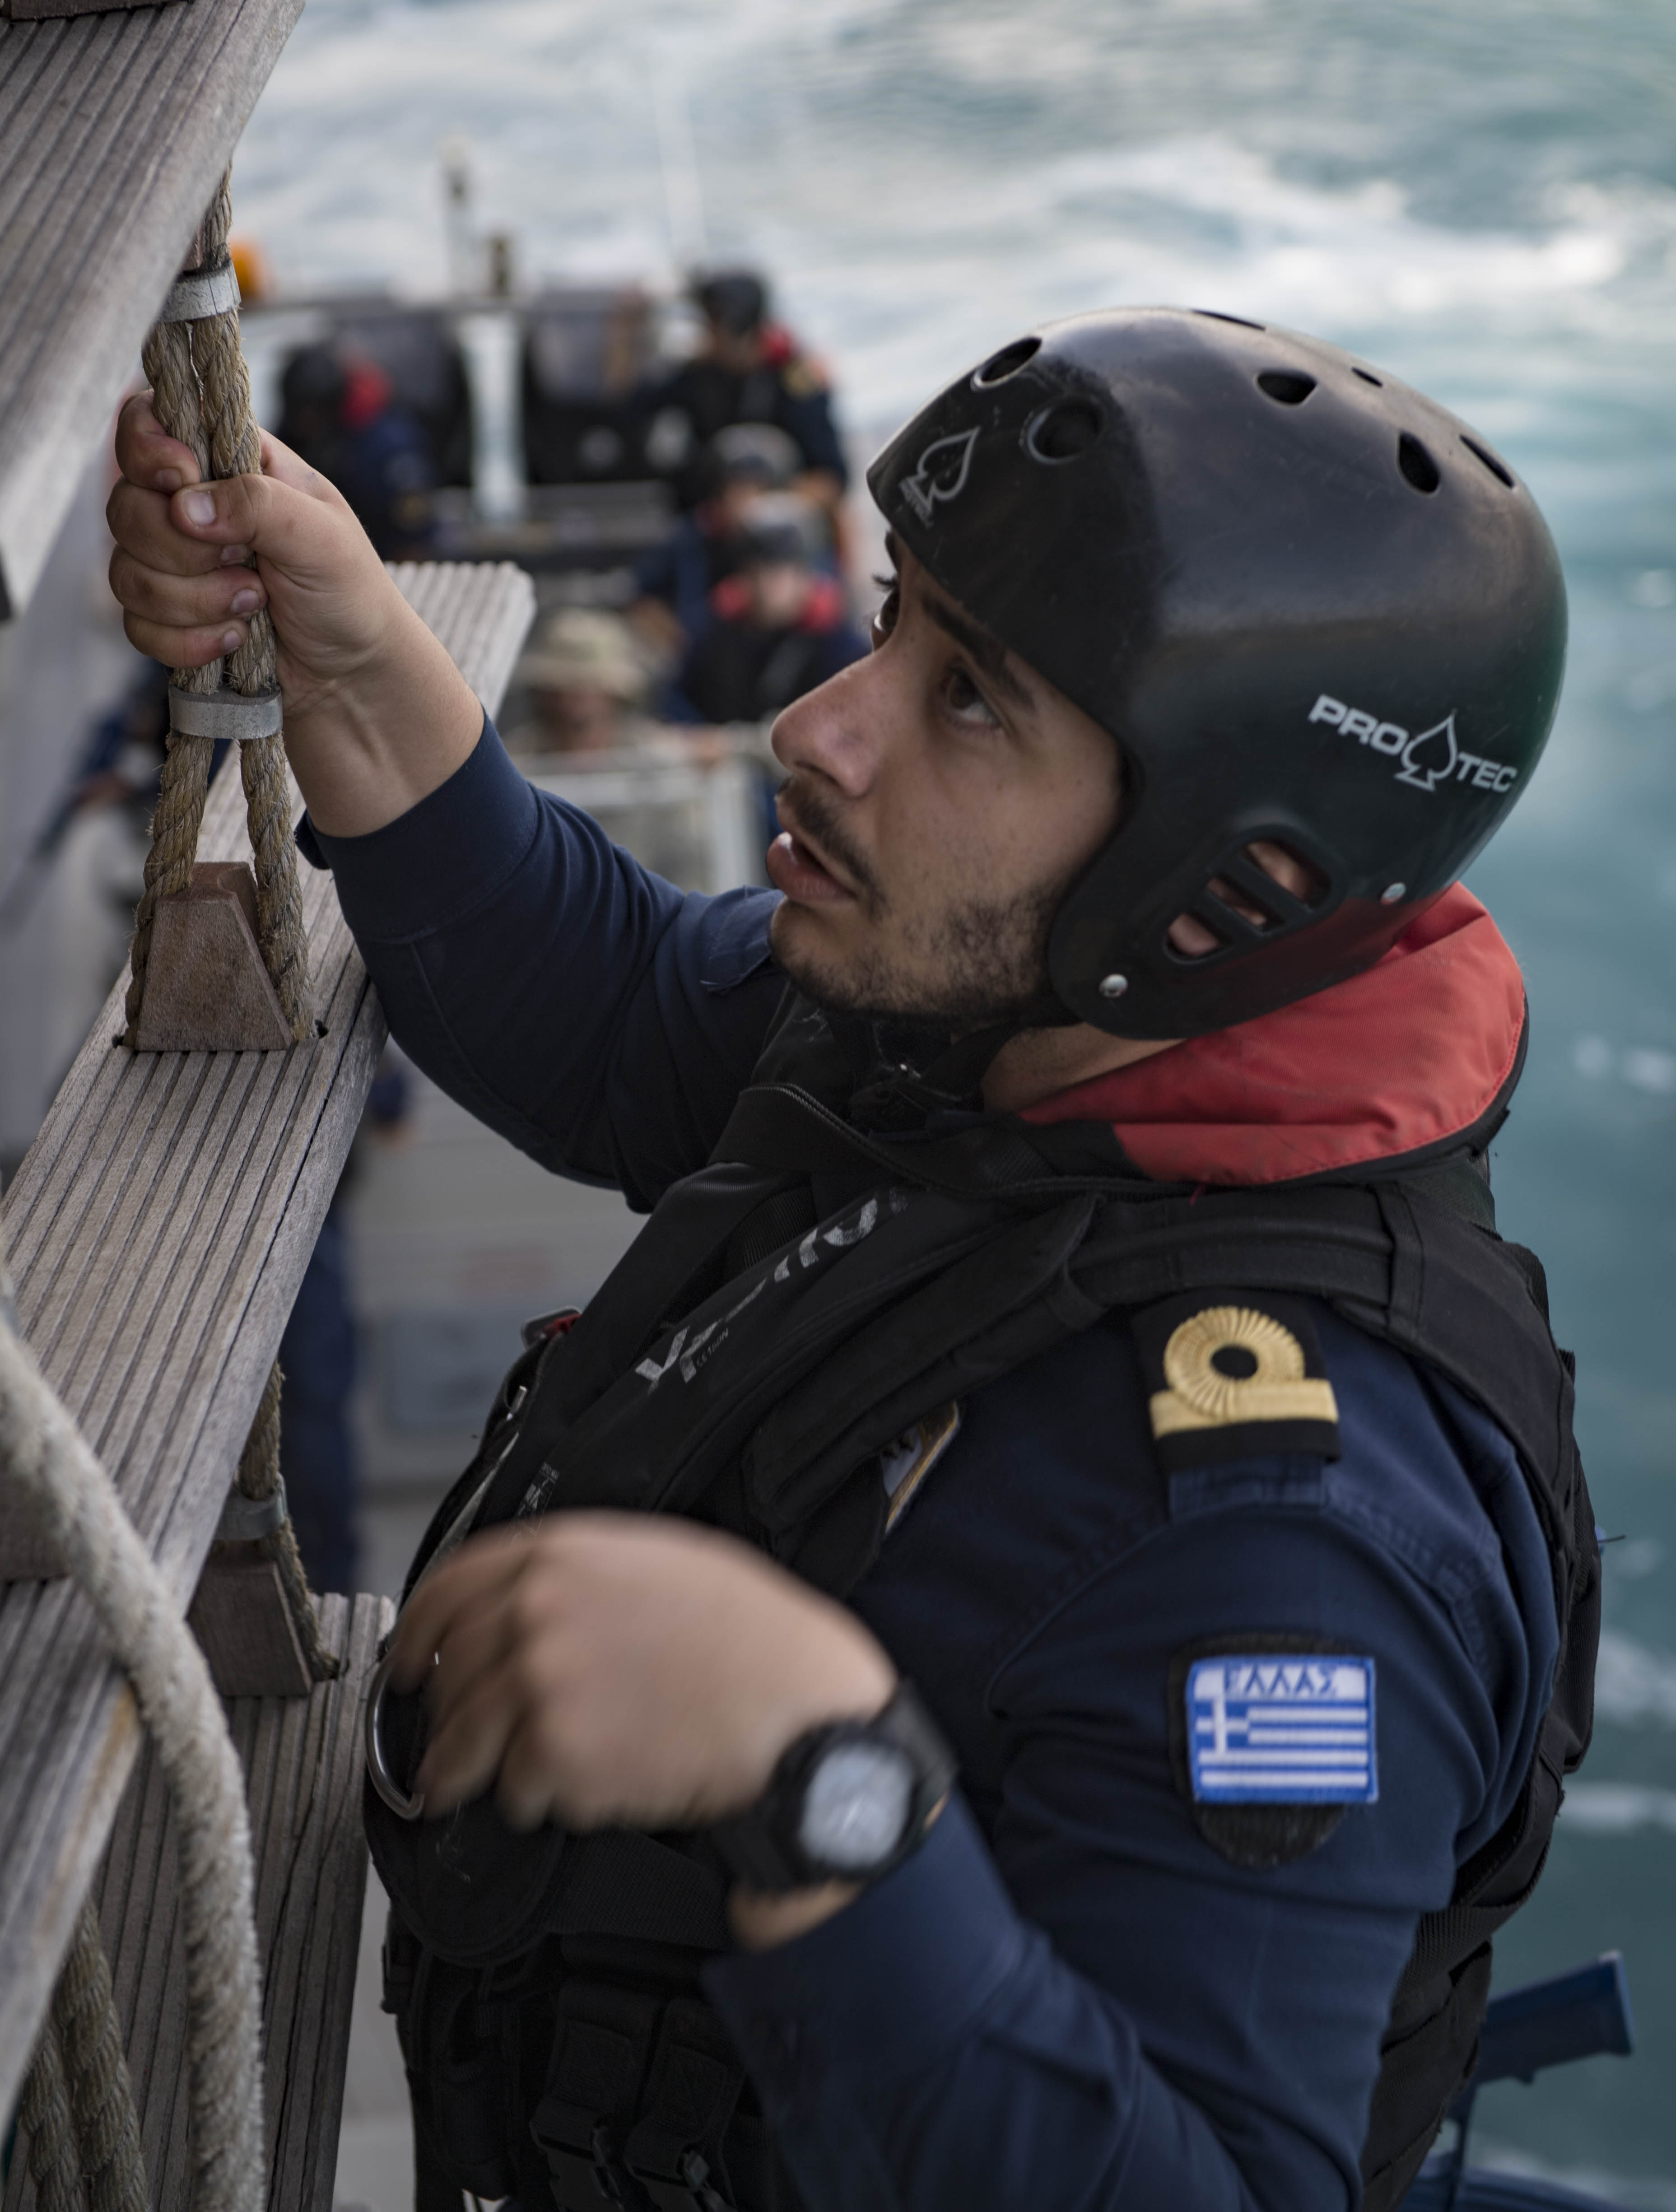 180502-N-UY653-215 SOUDA BAY, Greece (May 2, 2018) A Hellenic Navy sailor boards vessel during visit, board, search and seizure training during exercise Phoenix Express 2018, May 2. Phoenix Express is sponsored by U.S. Africa Command and facilitated by U.S. Naval Forces Europe-Africa/U.S. 6th Fleet, and is designed to improve regional cooperation, increase maritime domain awareness information sharing practices, and operational capabilities to enhance efforts to achieve safety and security in the Mediterranean Sea. (U.S. Navy photo by Mass Communication Specialist 2nd Class Ryan U. Kledzik/Released)